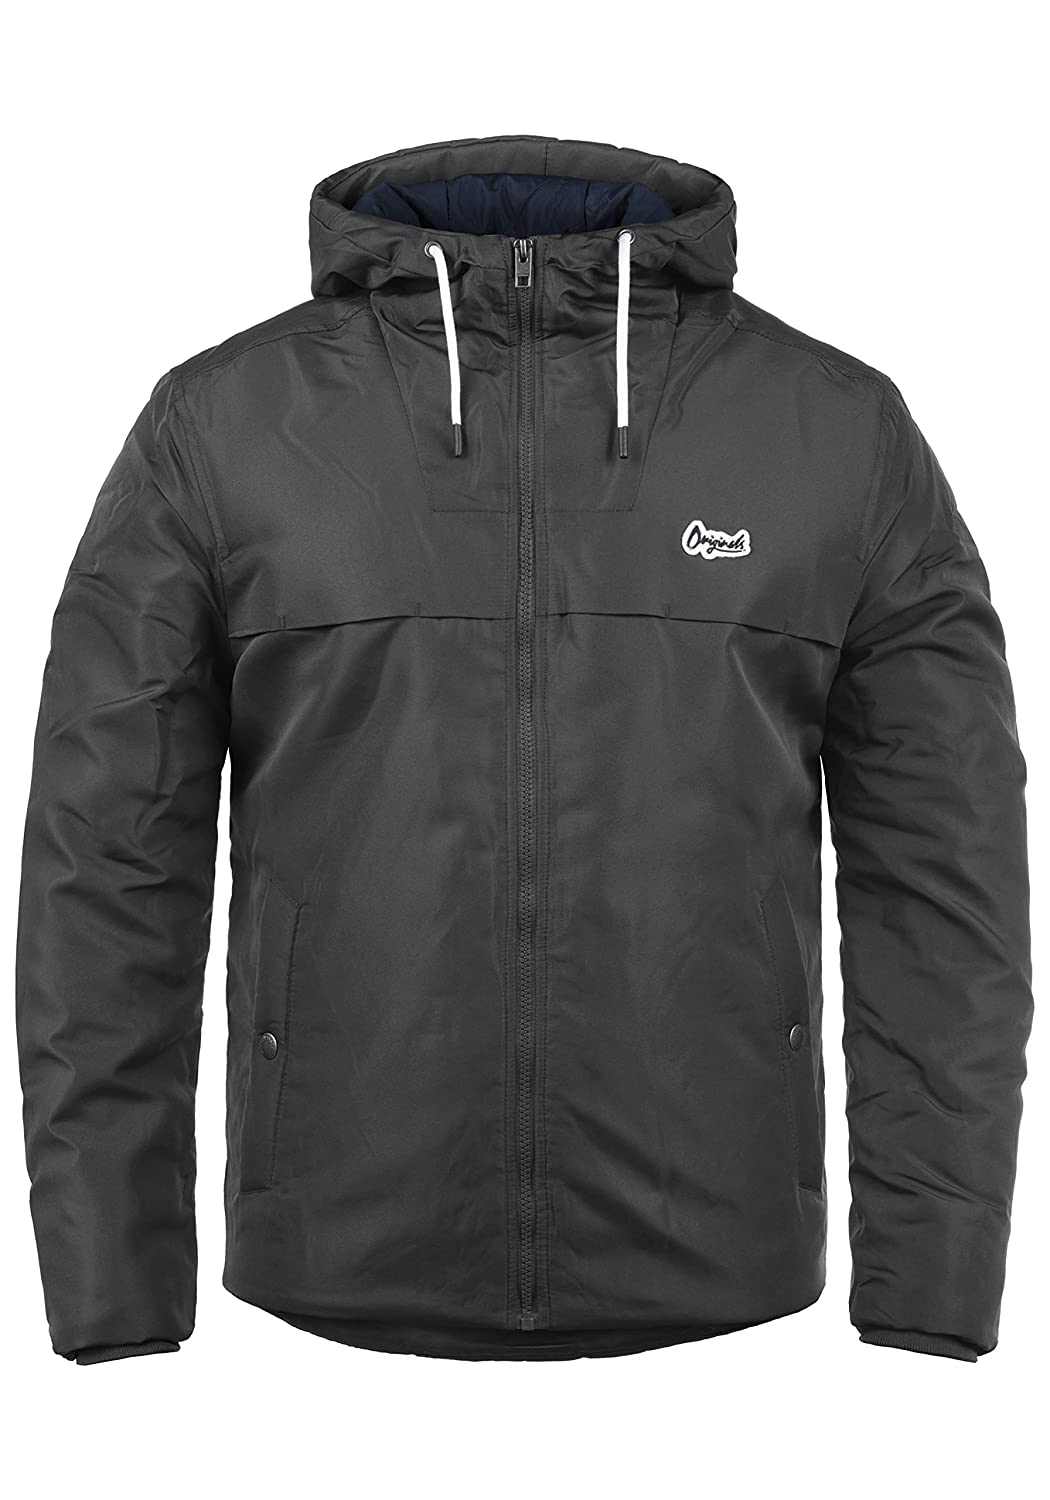 JACK & JONES Originals Paul Herren Winter Jacke Herrenjacke Winterjacke gefü ttert mit Kapuze